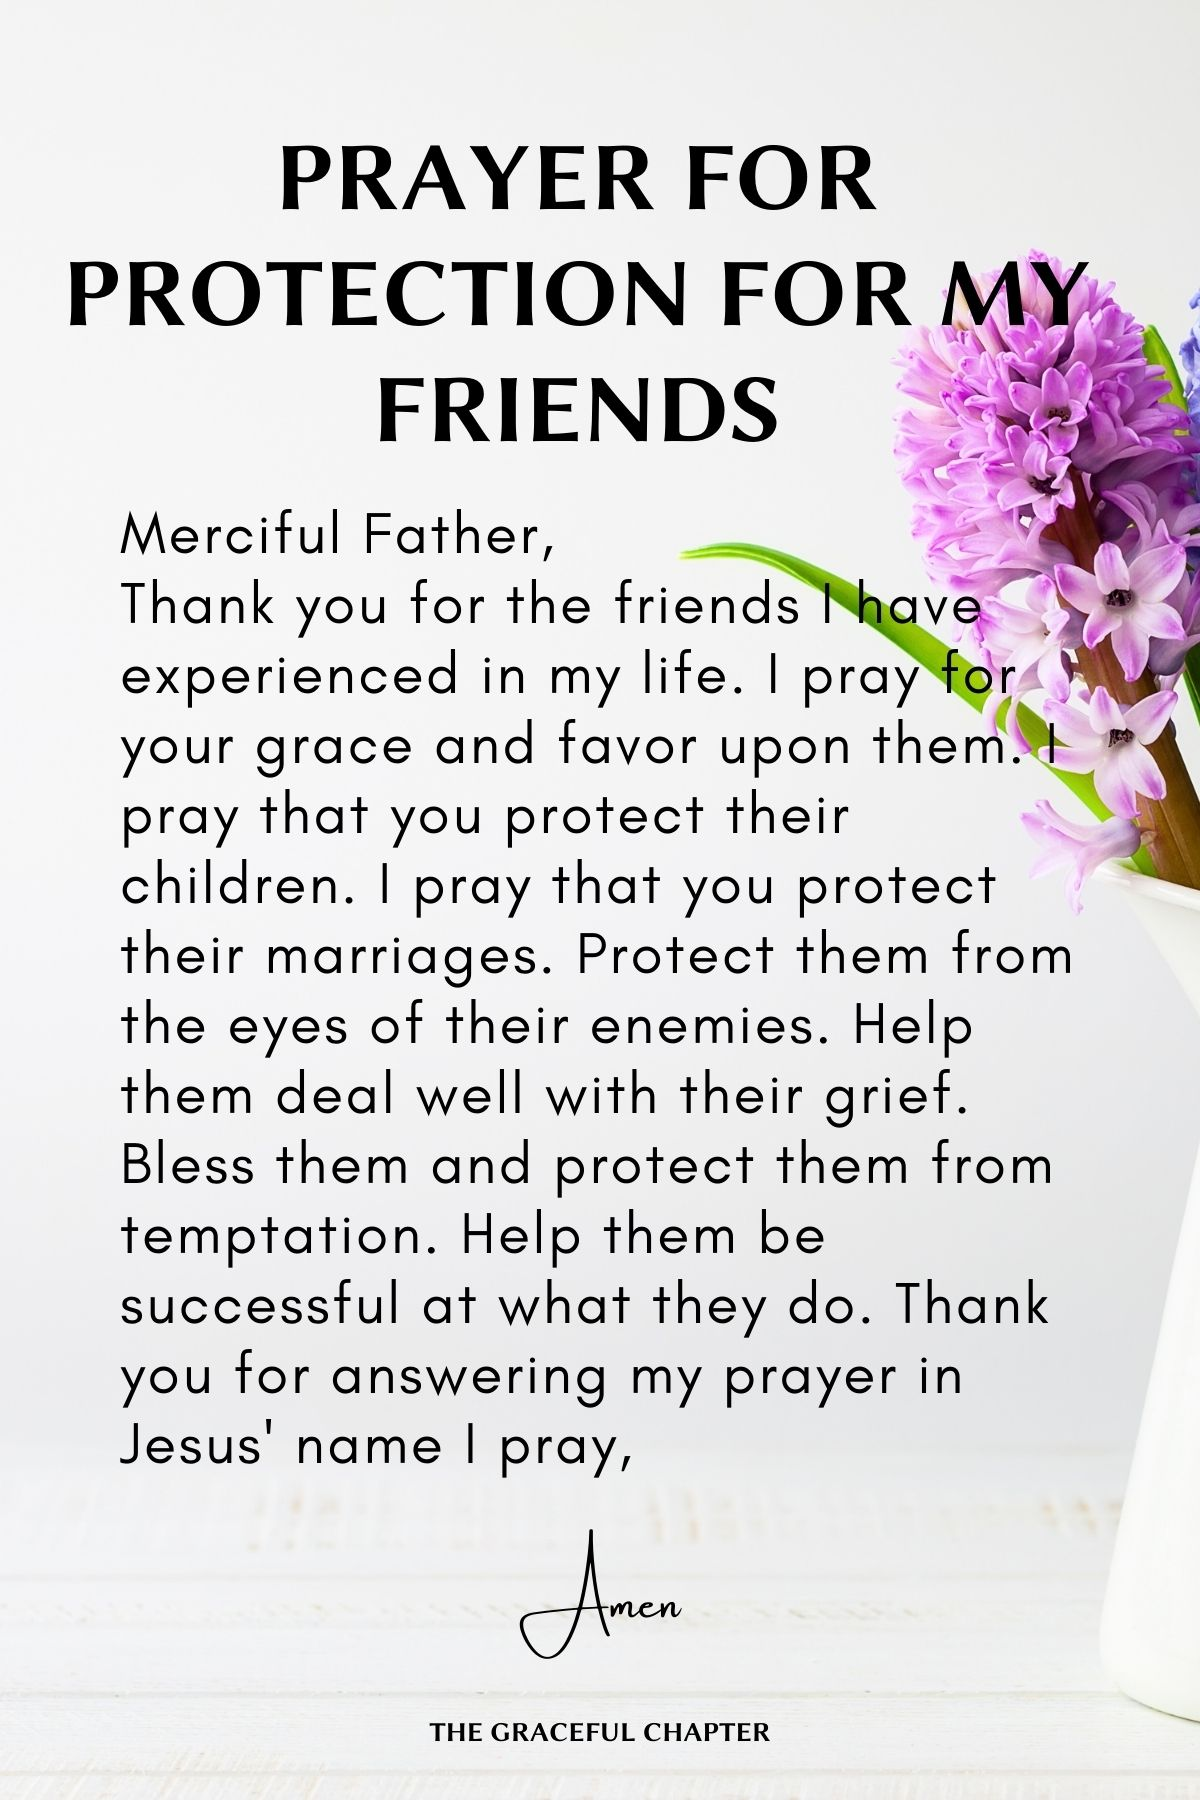 Prayer for Protection for friends